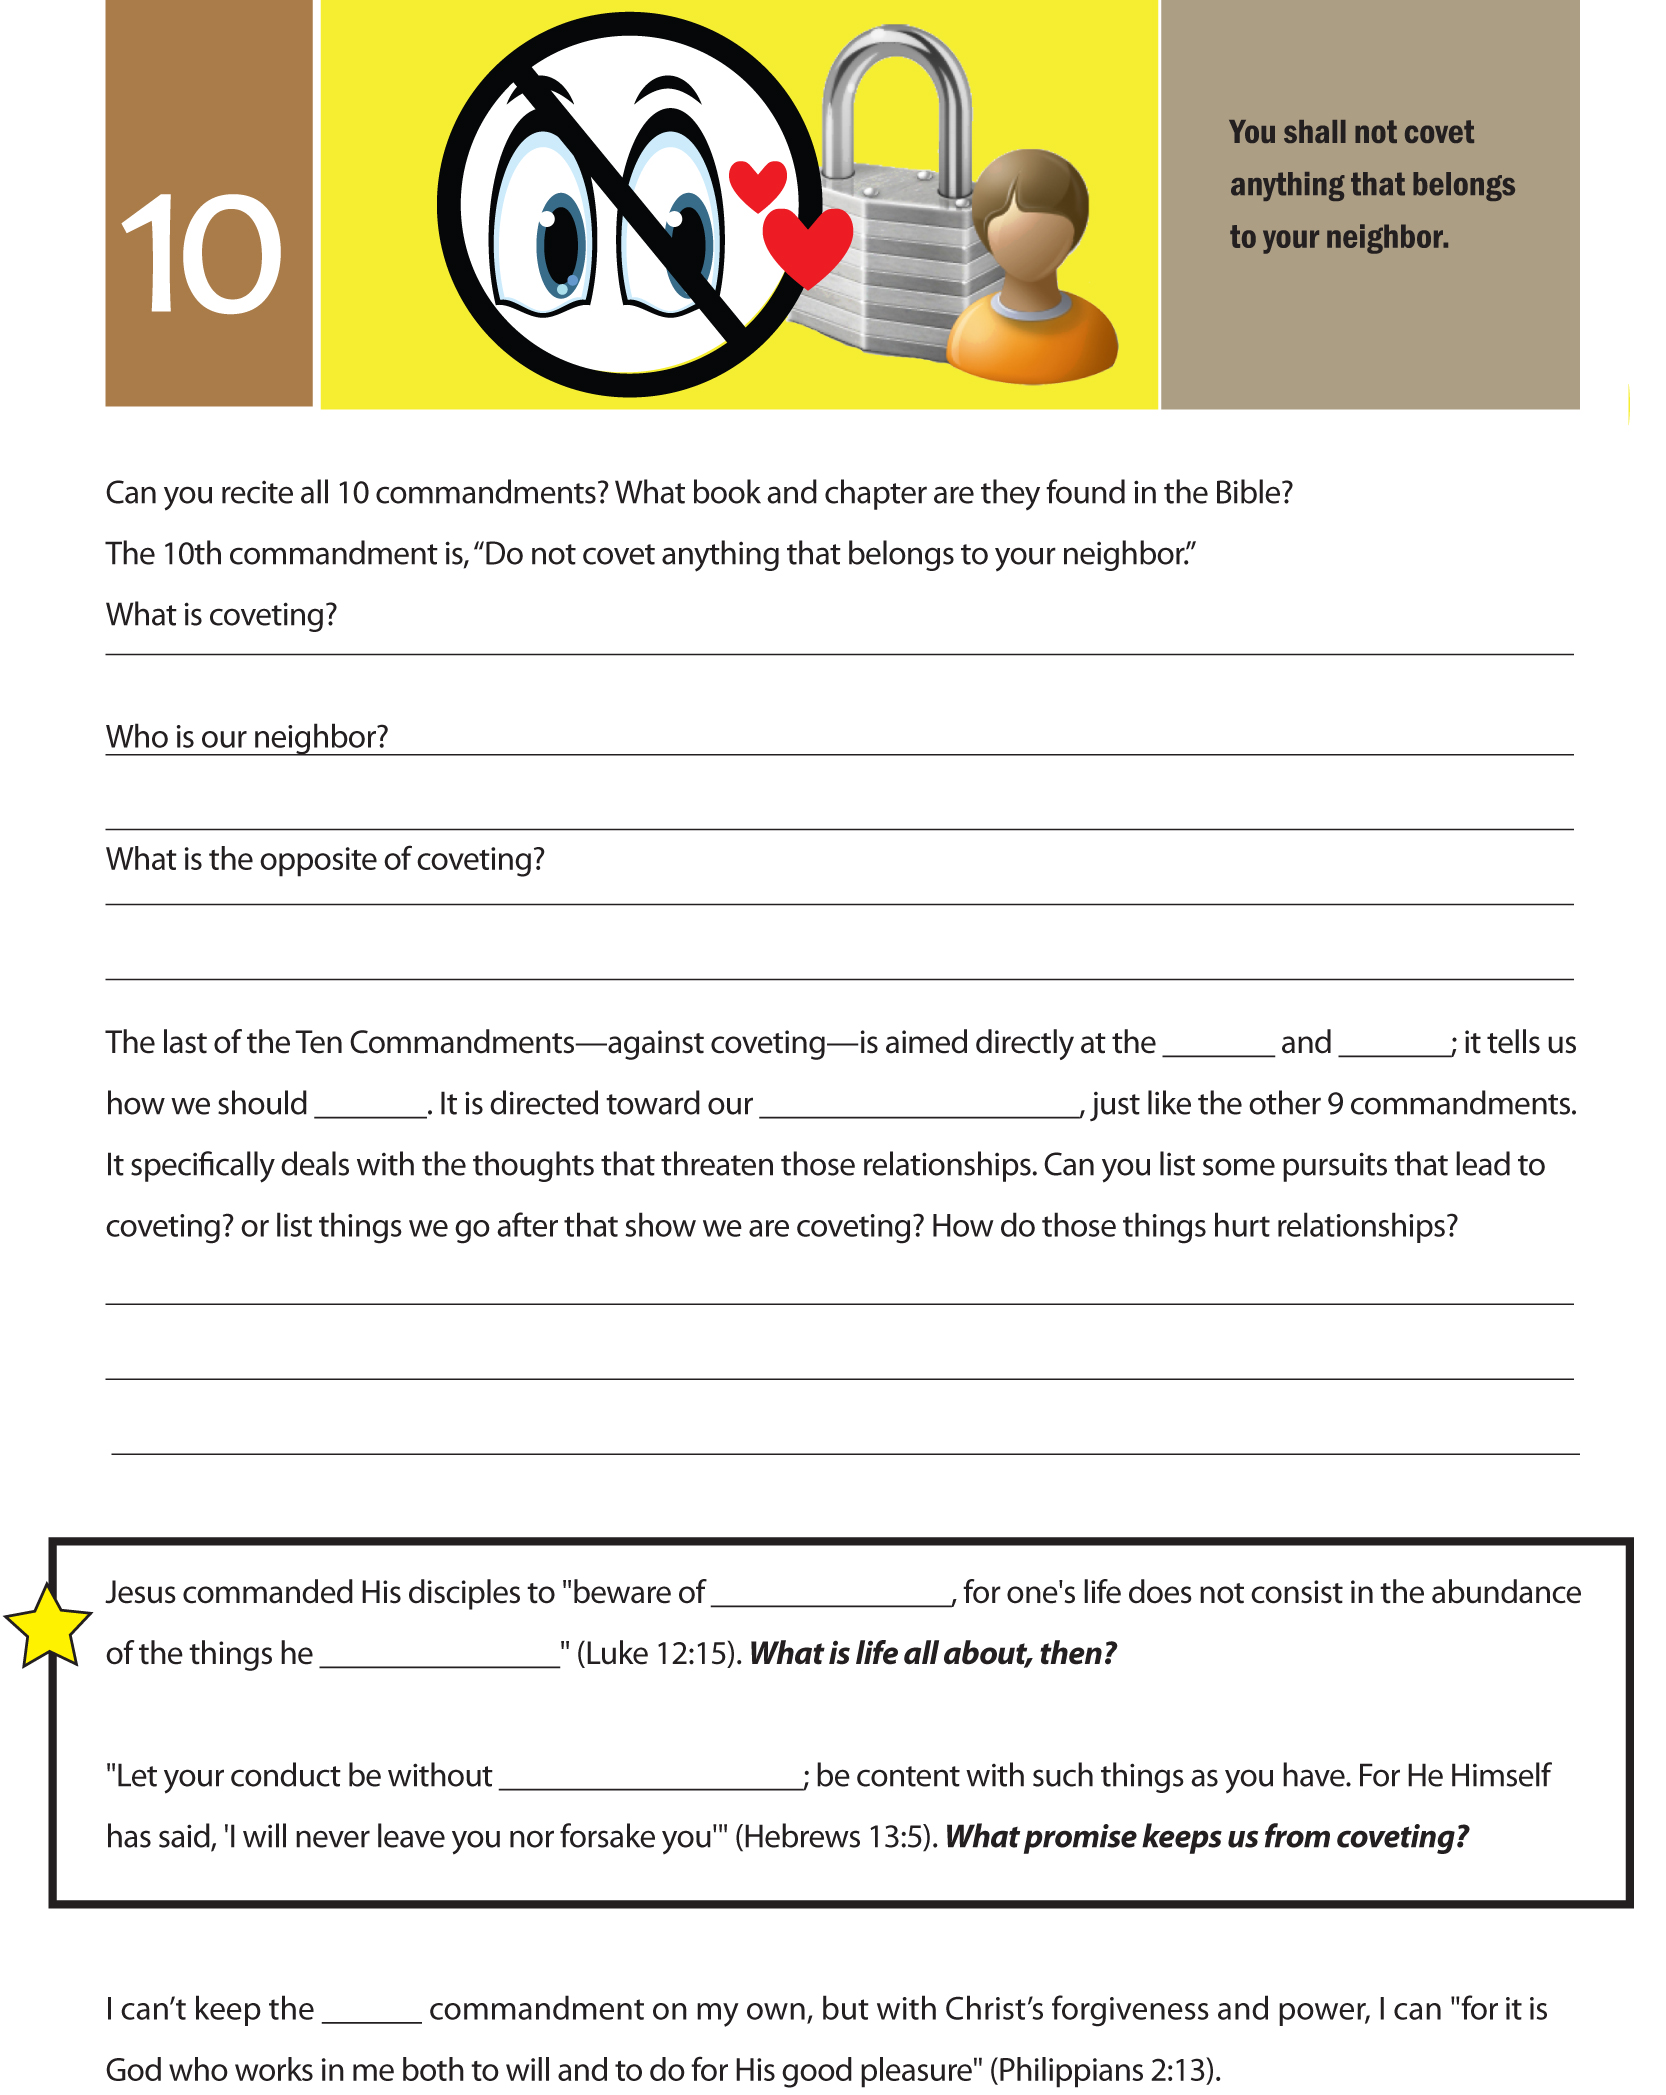 10 Commandments Graphics Worksheets Amp Curriculum For